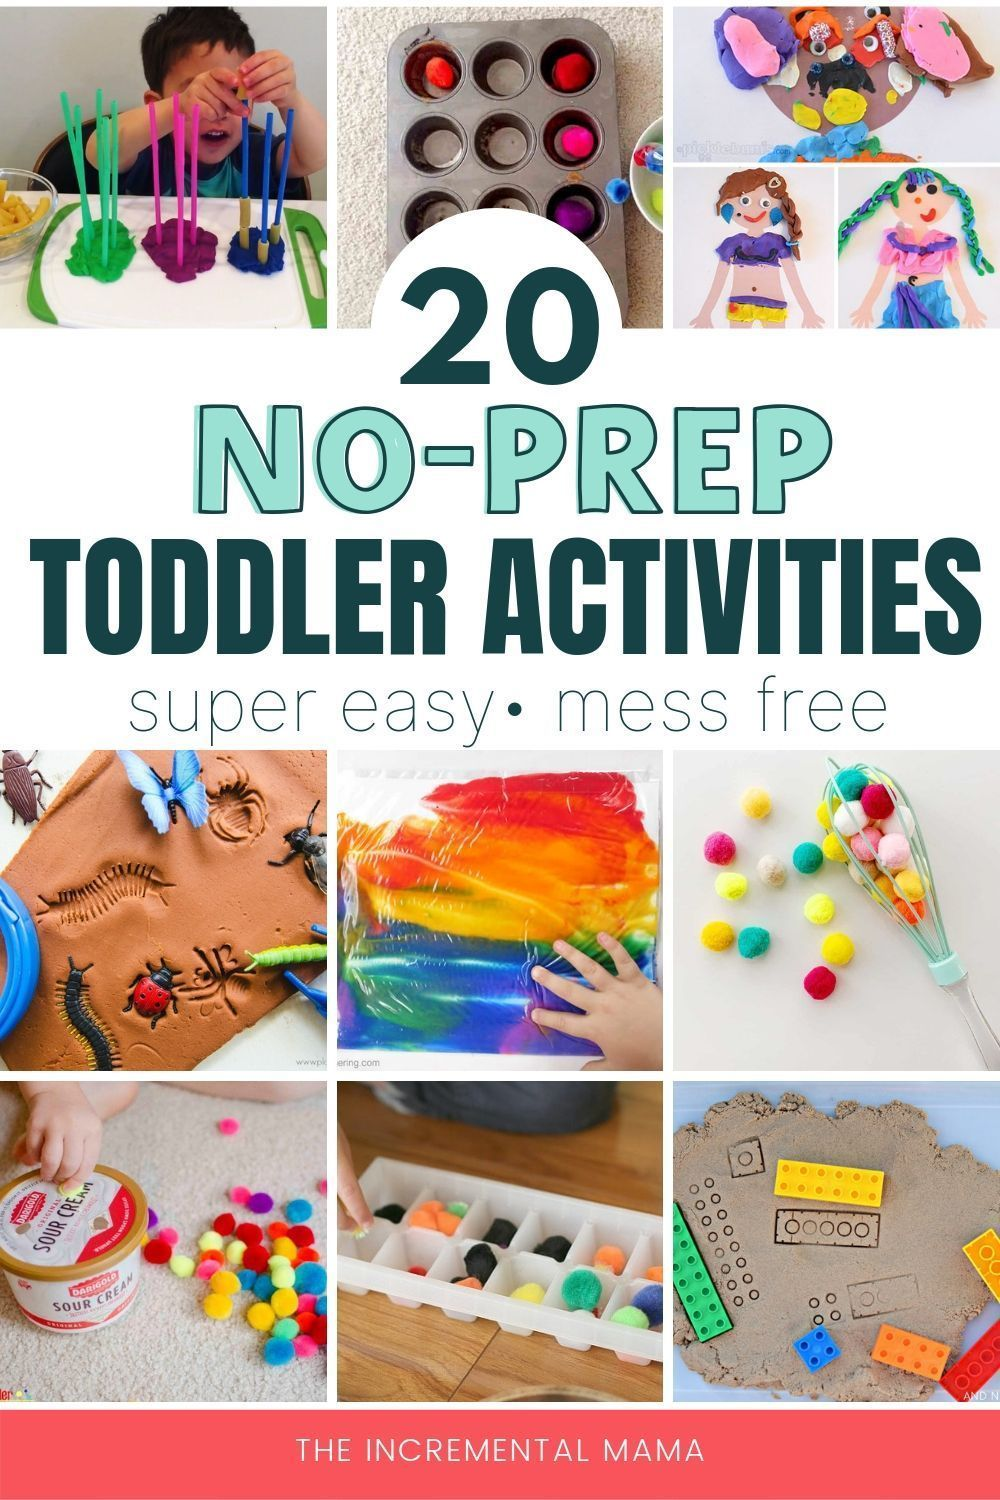 These 20 Activities For 2 Year Olds Are Super Easy Mess Free And Will Keep Yo Easy Toddler Activities Toddler Learning Activities Toddler Activities Daycare